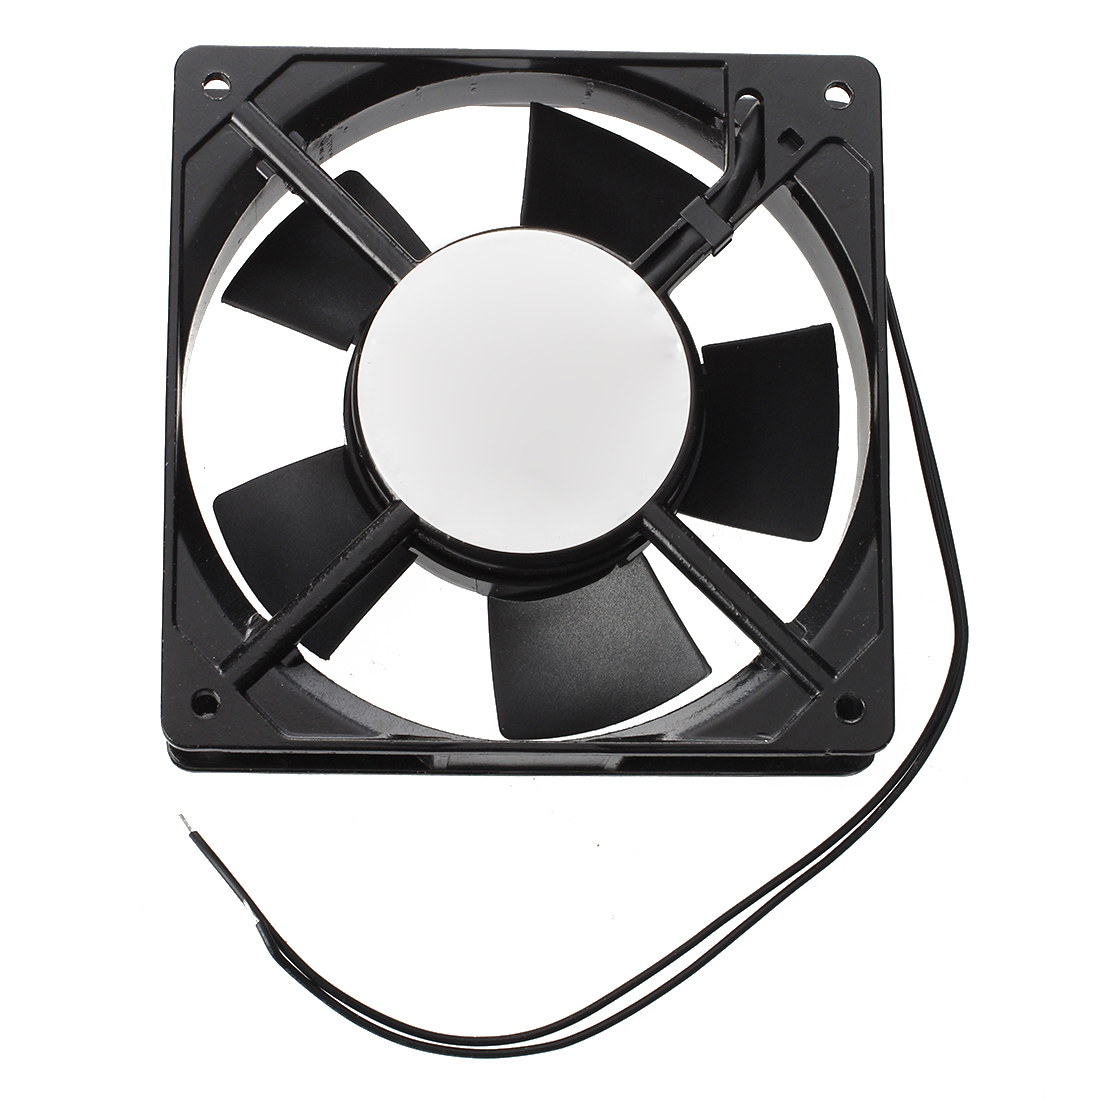 PROMOTION! New 278g Black Metal Industrial 120 X 120 X 25mm 0.1A AC 220 240V Cooling Fan